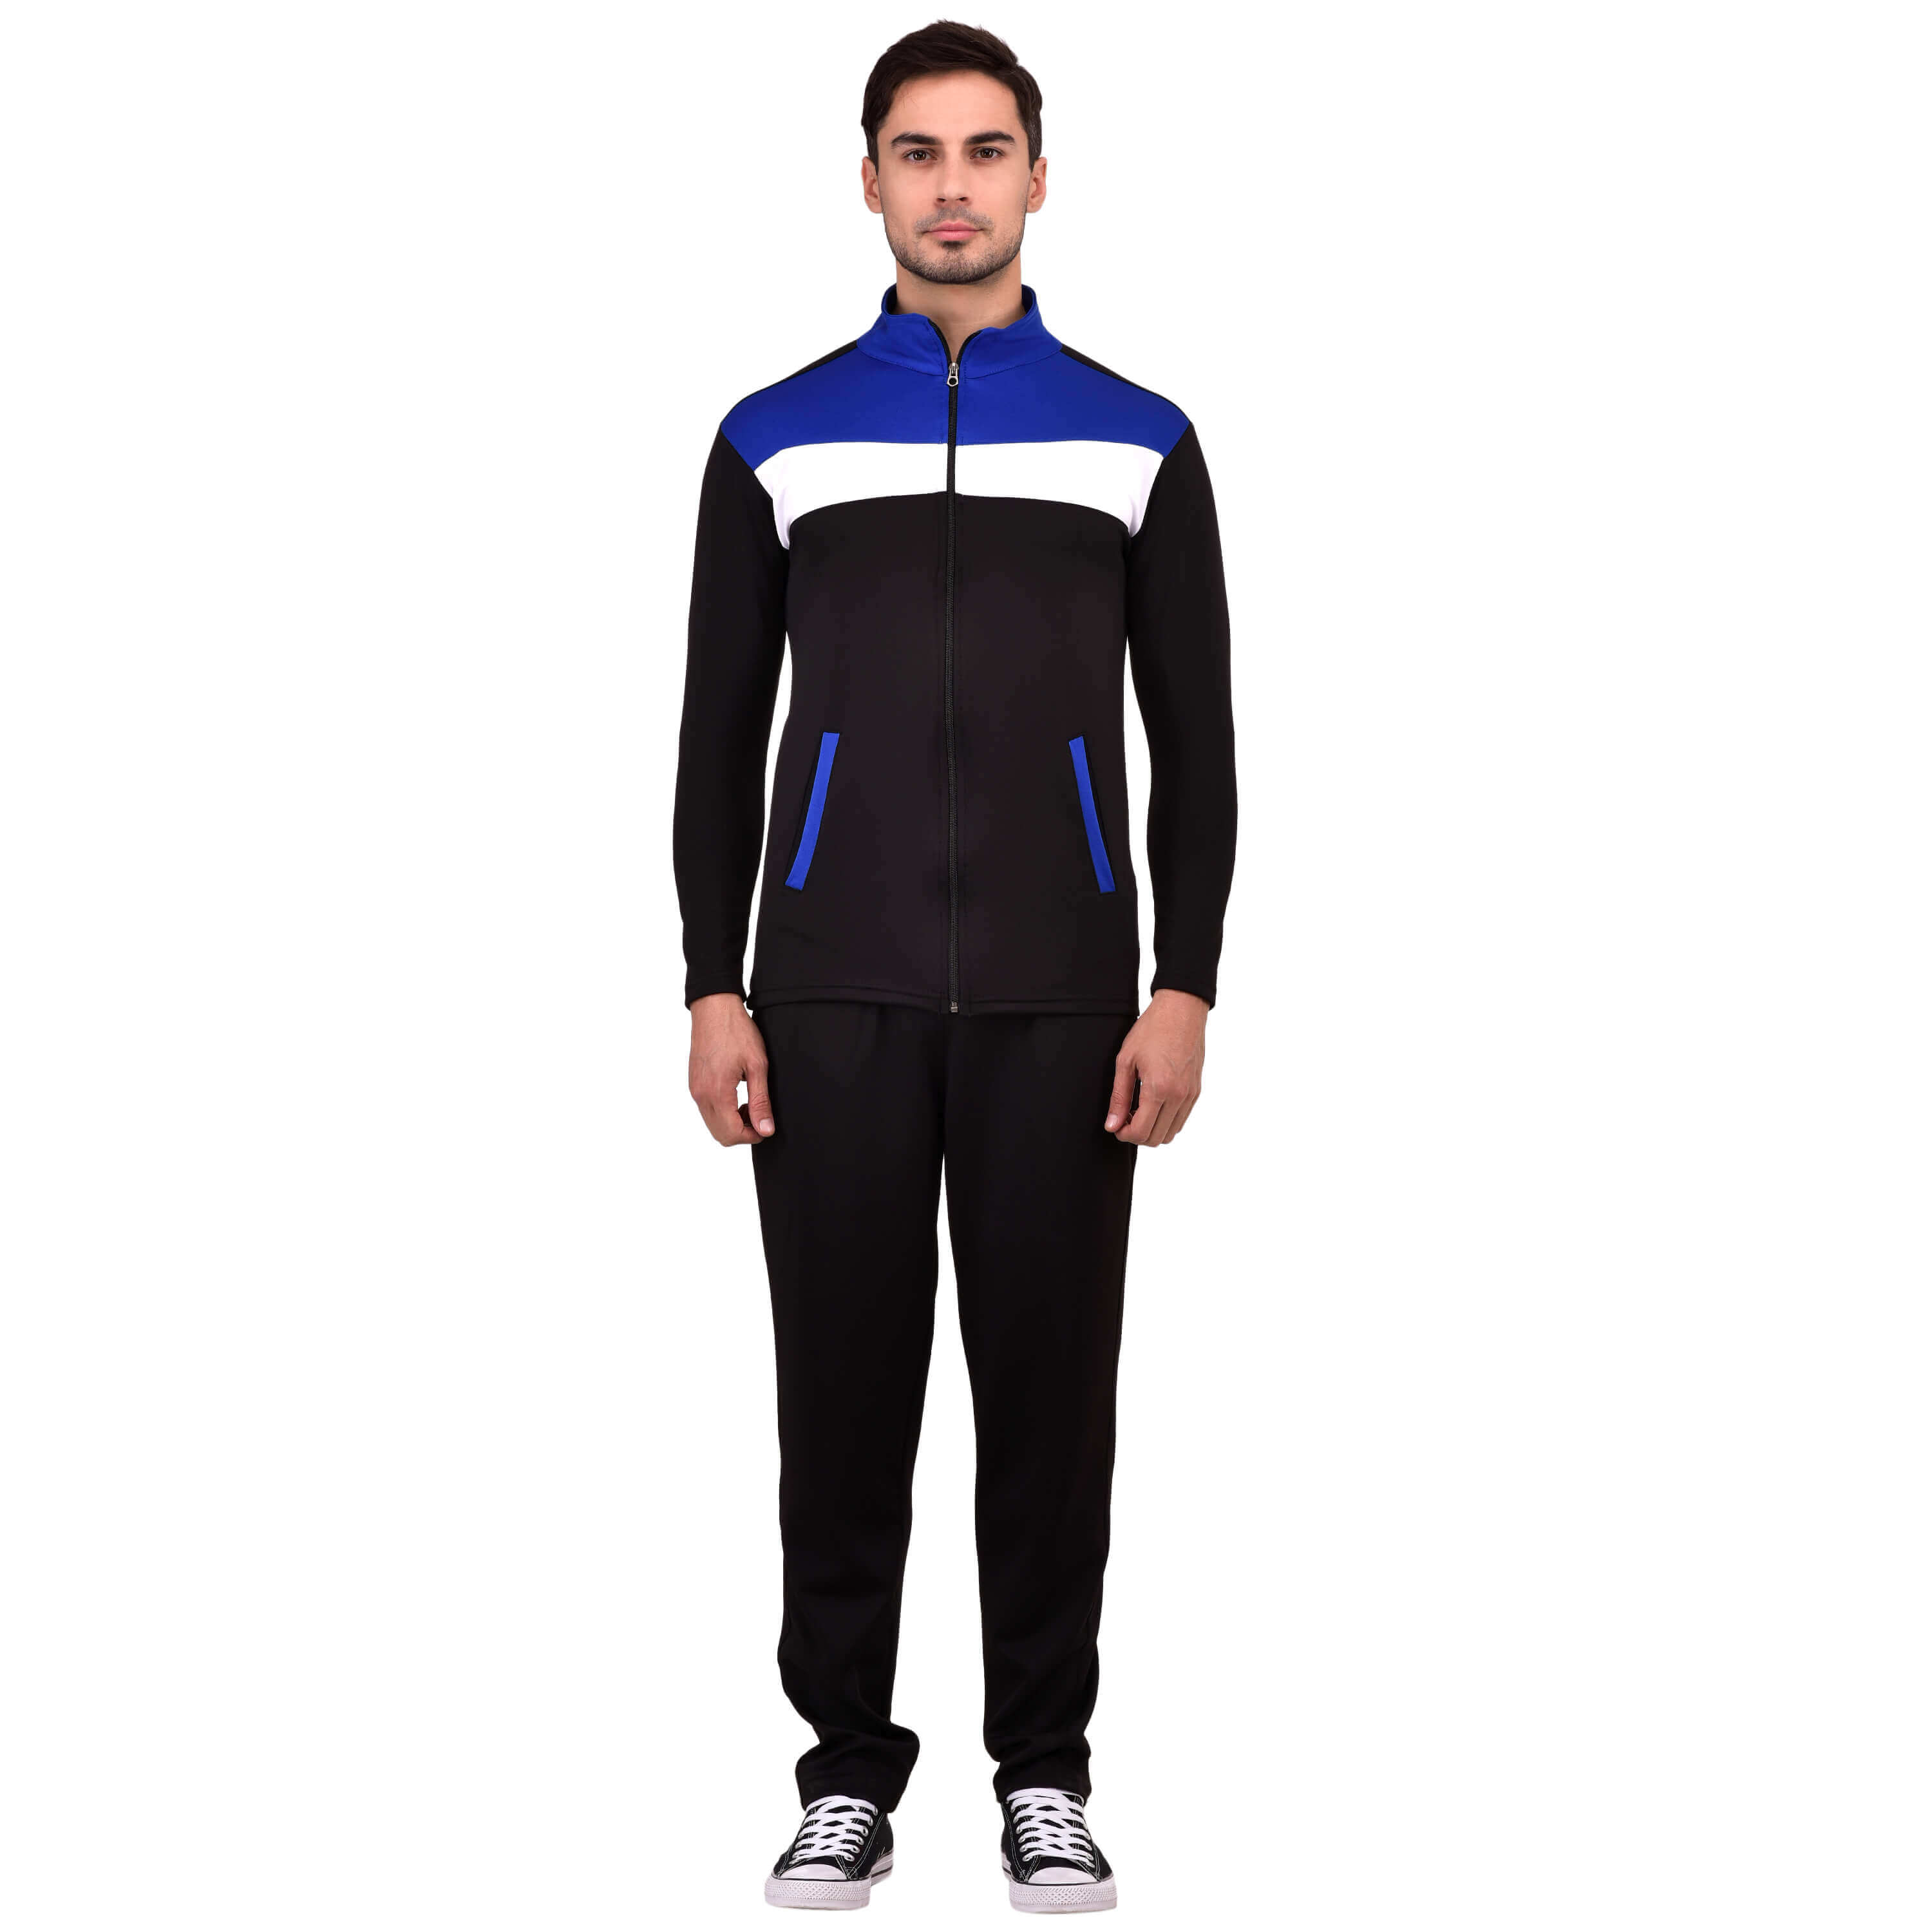 Black Tracksuit Manufacturers in Peru